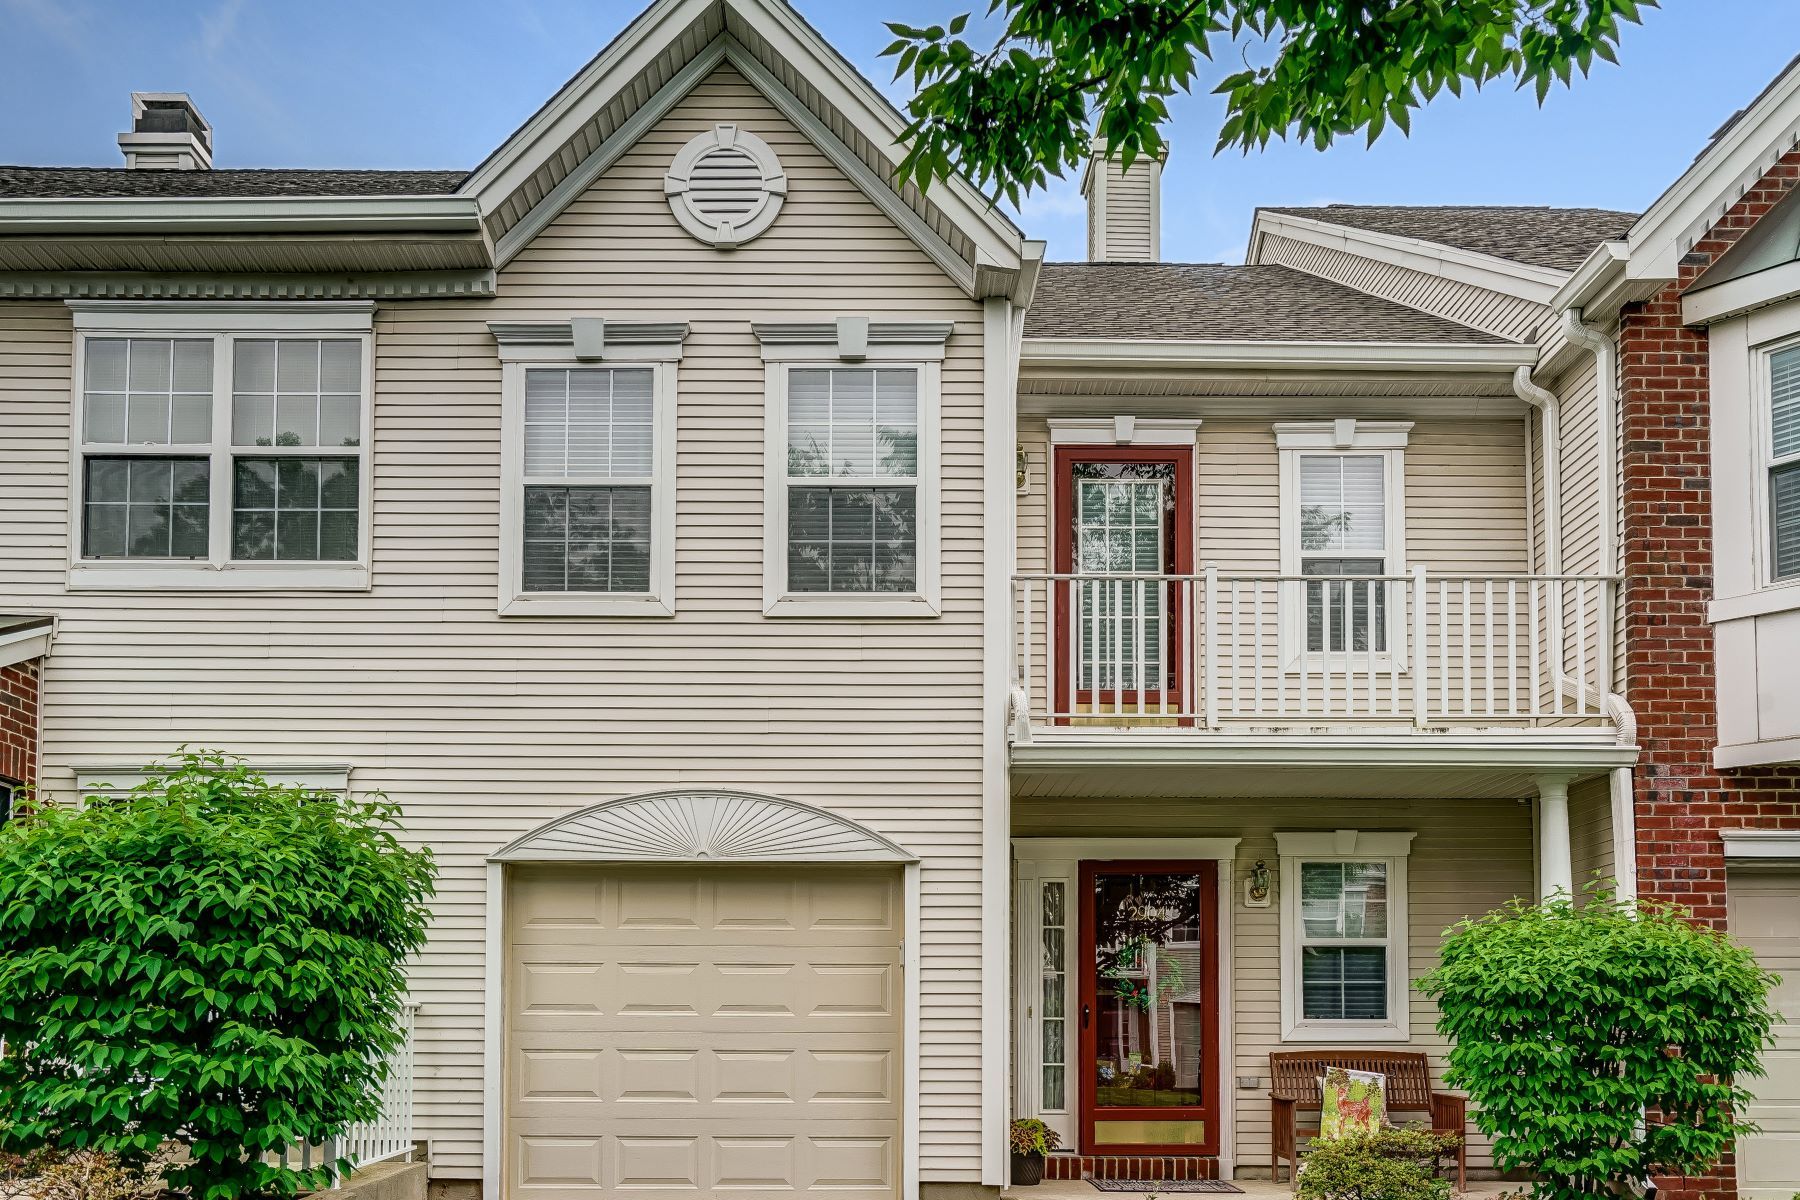 Townhouse for Sale at Turn Key Townhouse 2904 Johnson Circle Bridgewater, New Jersey 08807 United States